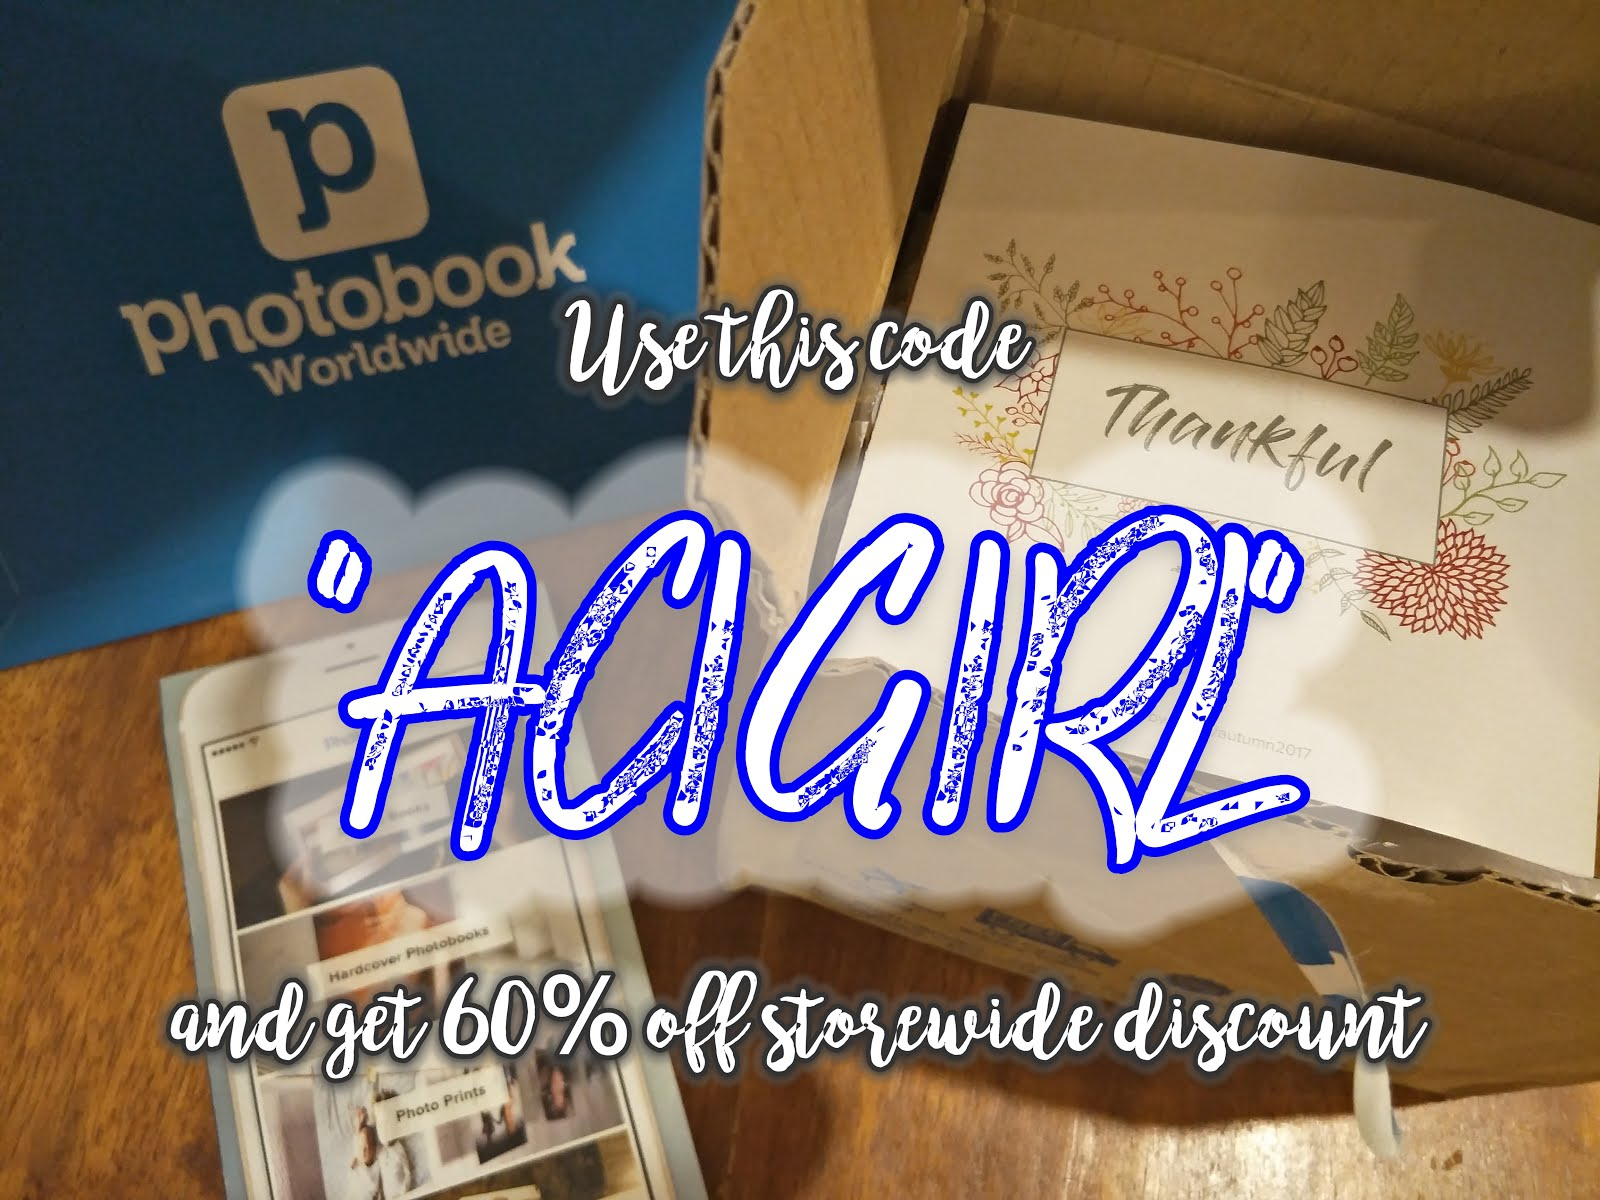 Photobook Wordlwide Discount Voucher